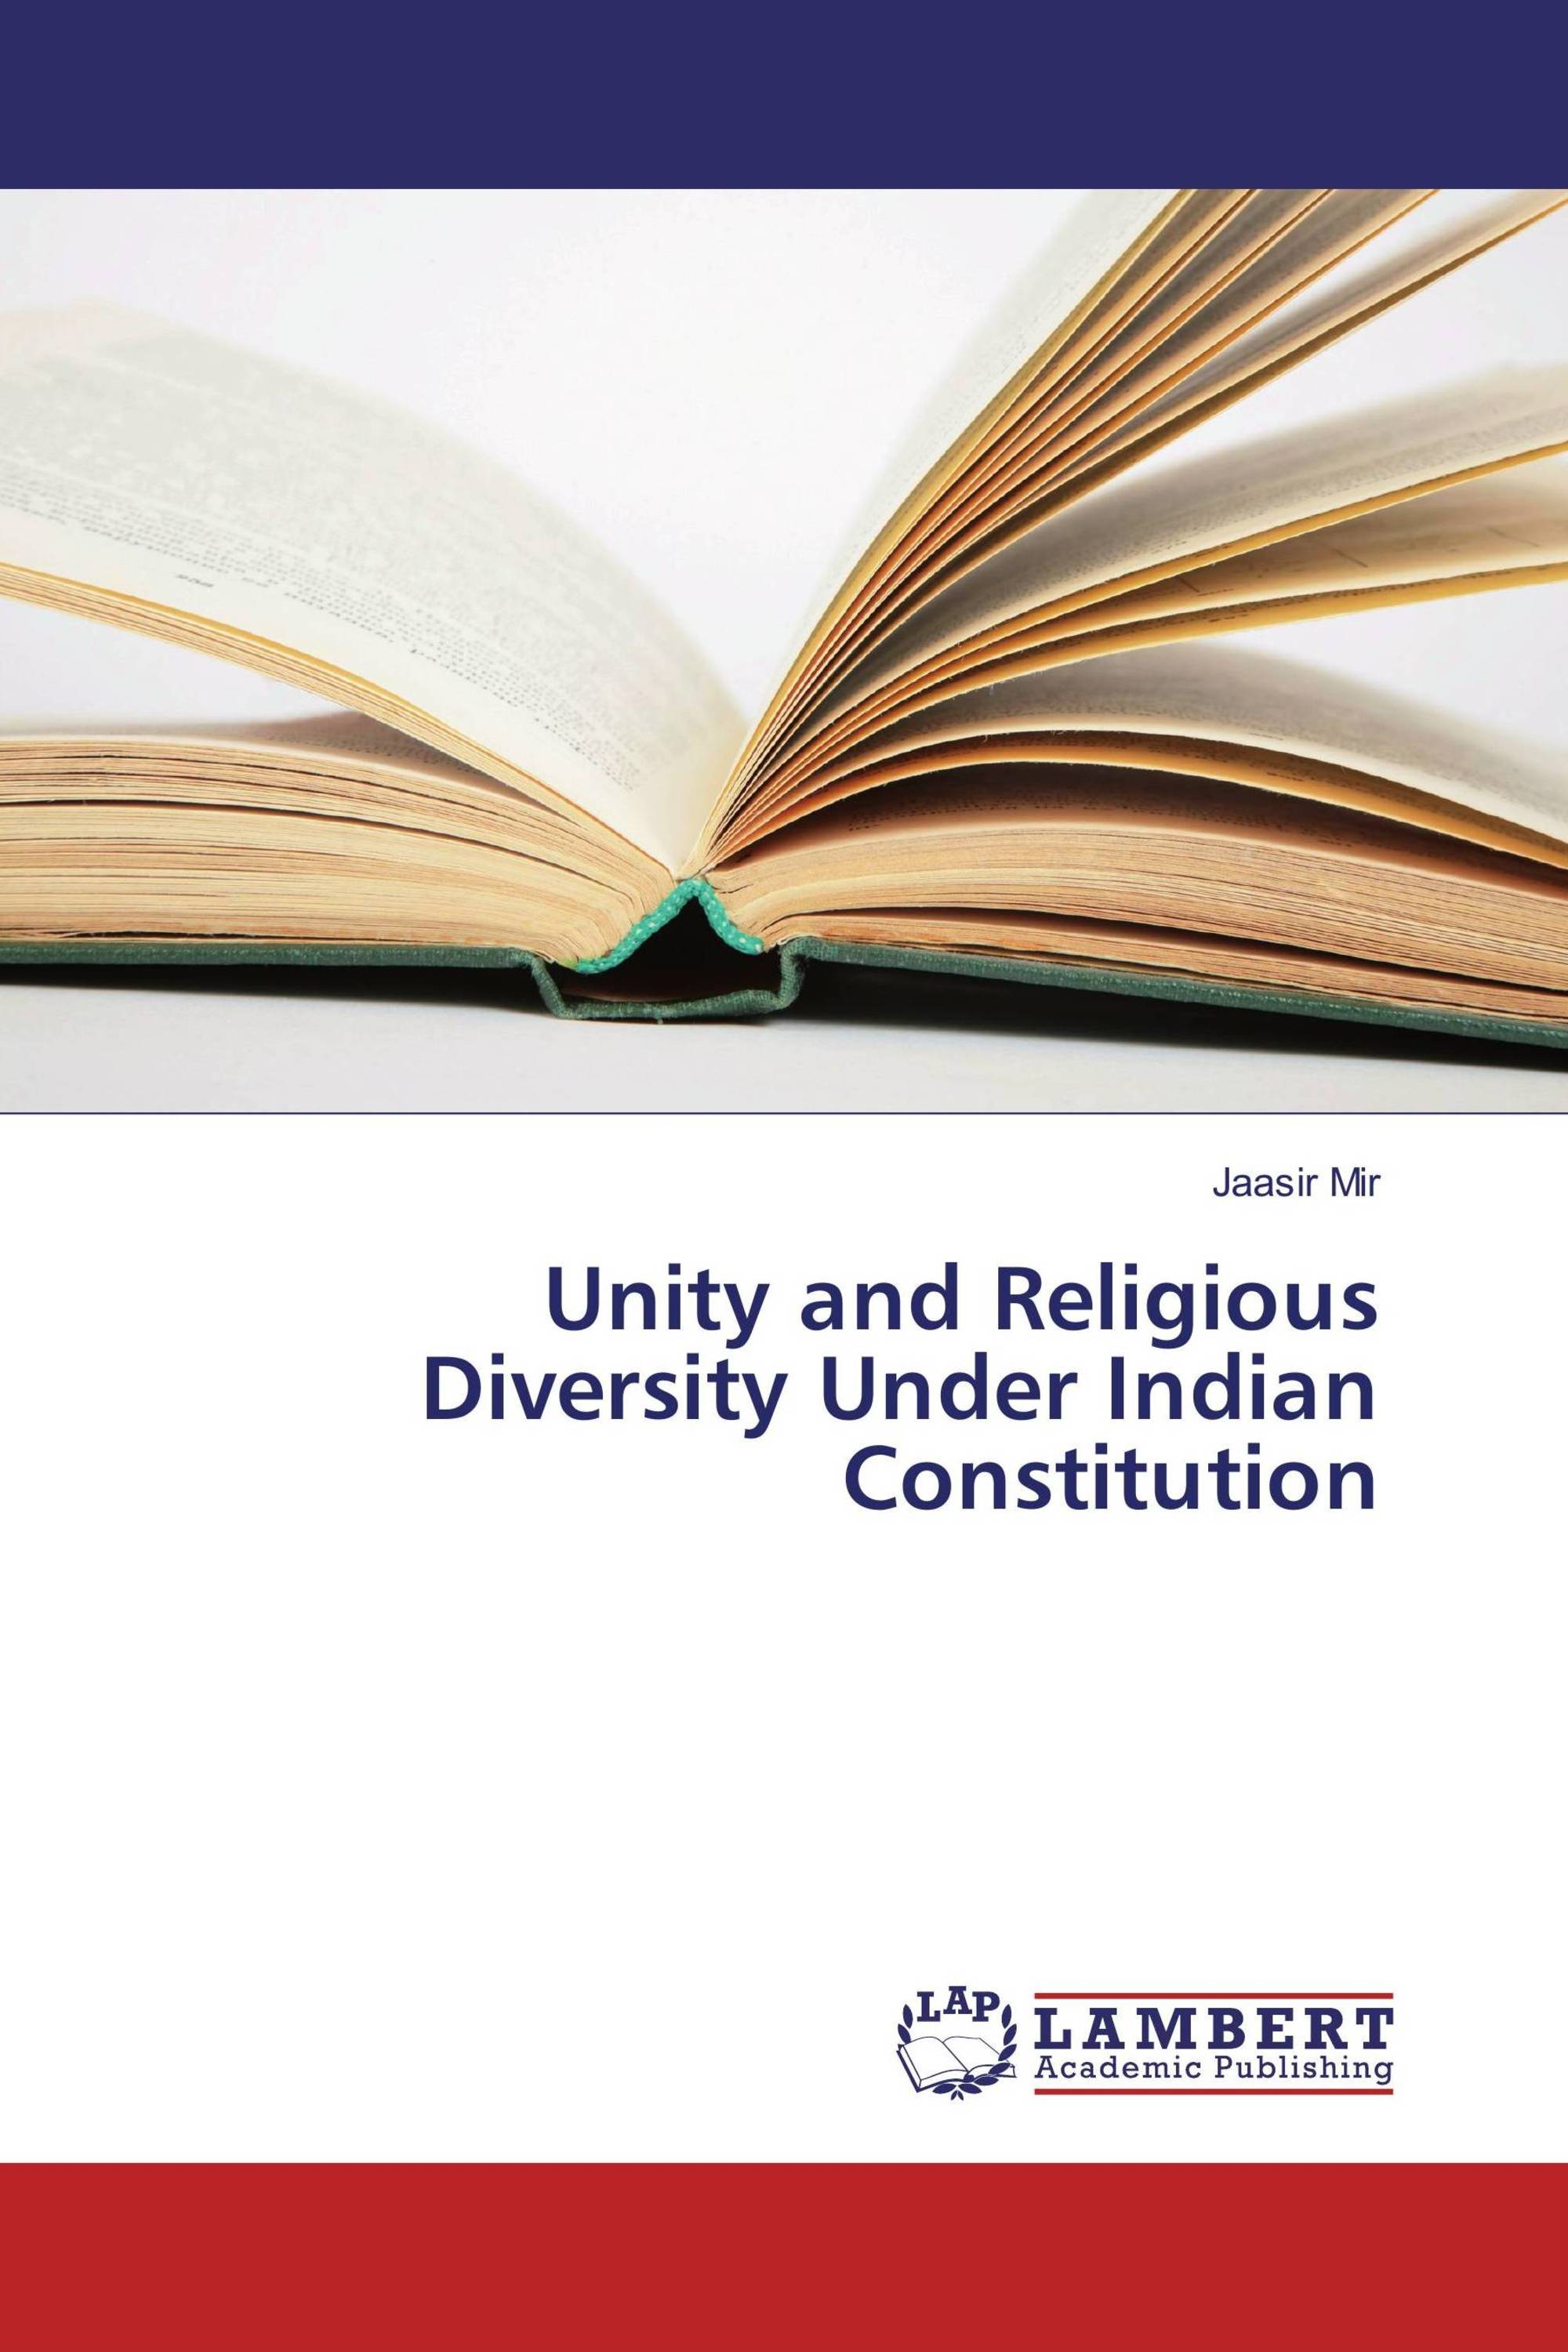 Unity and Religious Diversity Under Indian Constitution